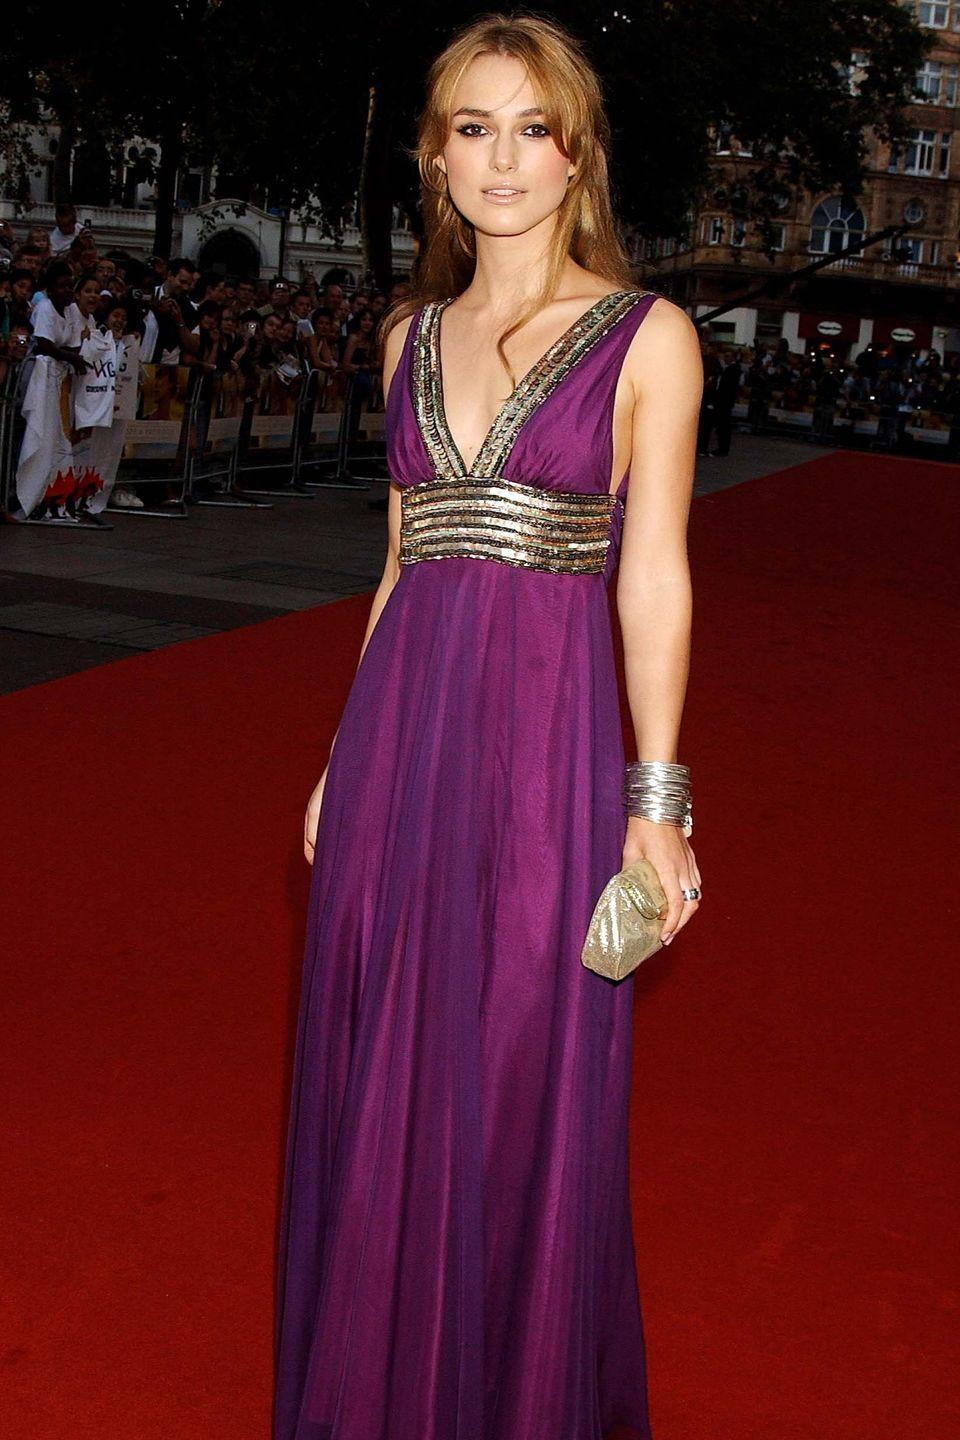 <p>The gold details and purple hue of Keira Knightley's dress she wore to the 2005 premiere of <em>Pride and Prejudice</em> makes the British actress look a lot like the Greek heroine.</p>